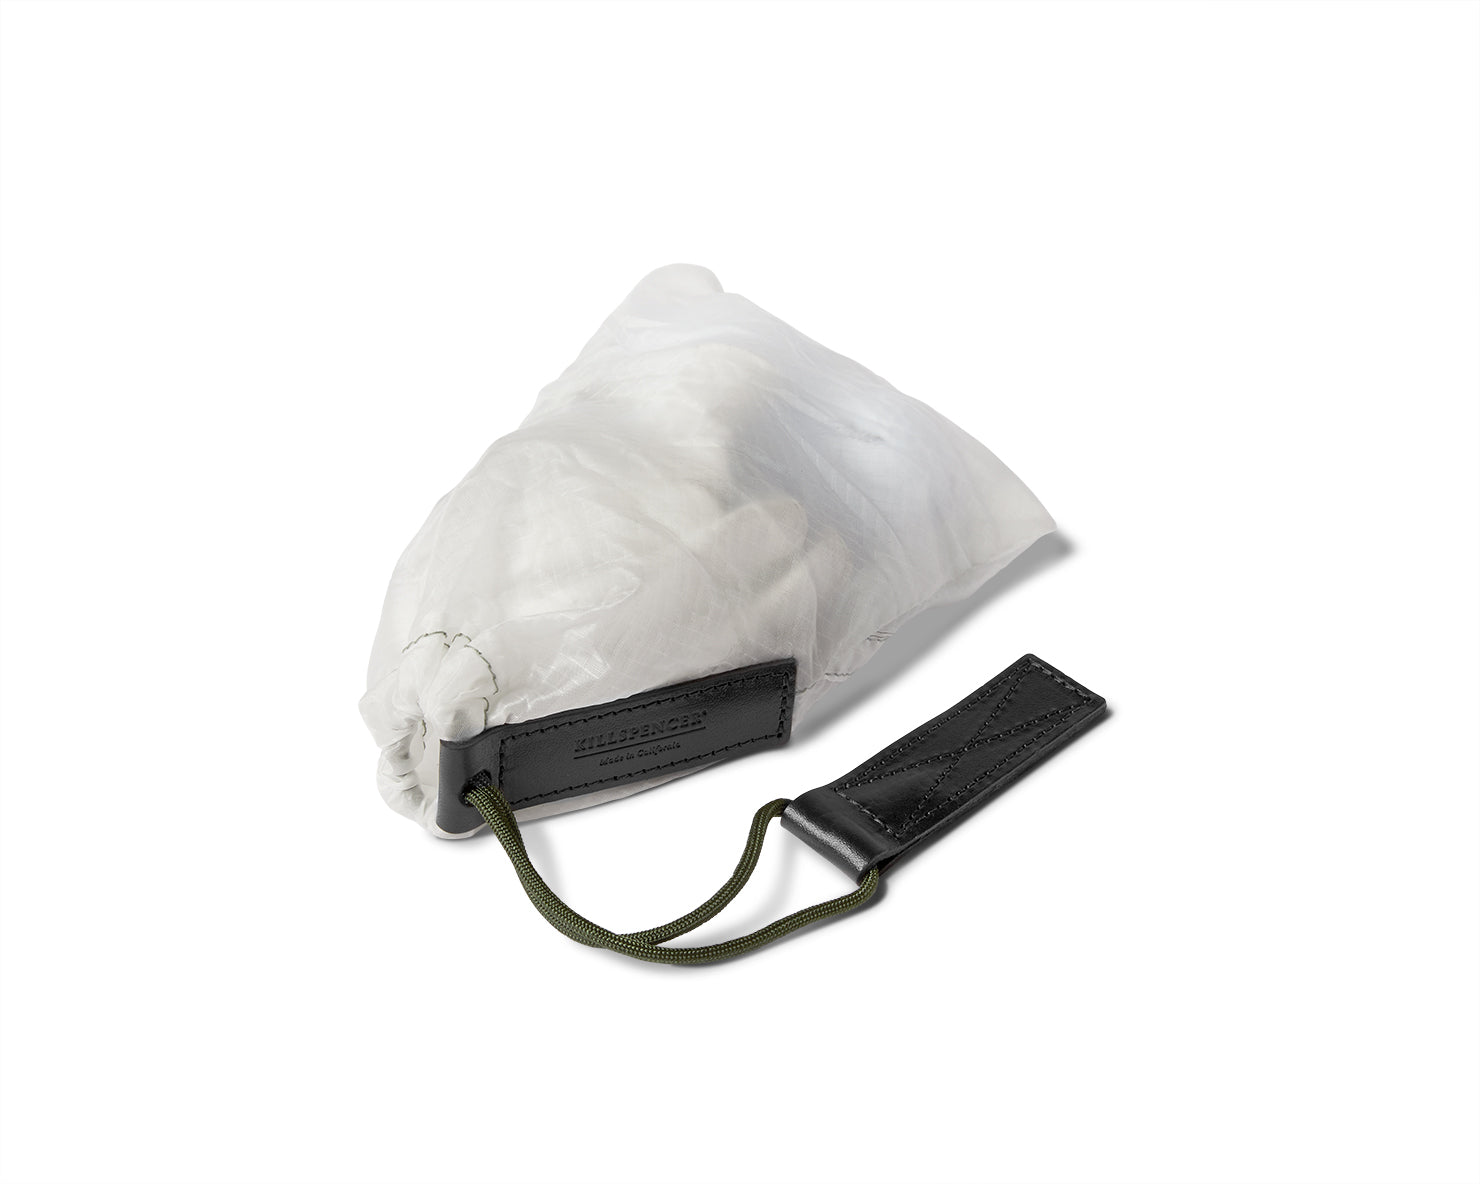 PARACHUTE BAG 2.0 - Small Accessory Bag | KILLSPENCER® - White Parachute